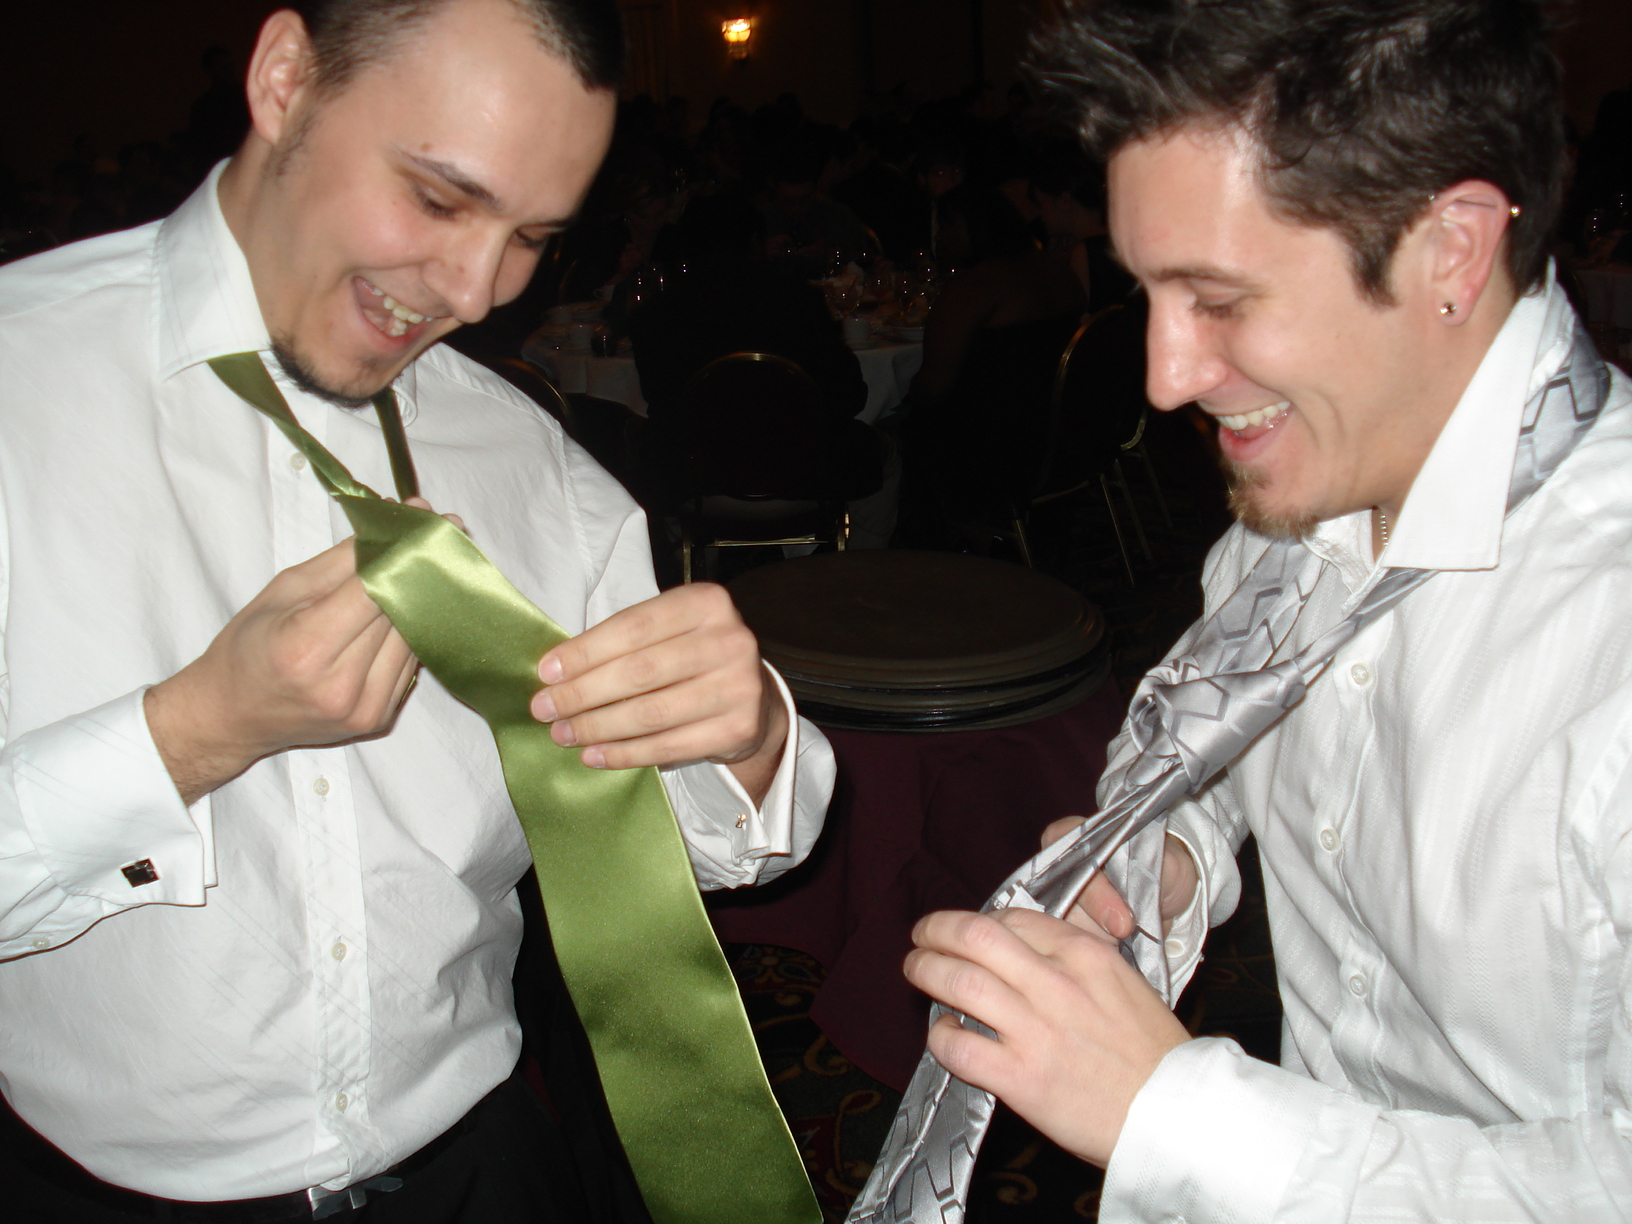 How many sofware engineers does it take to tie a windsor knot?